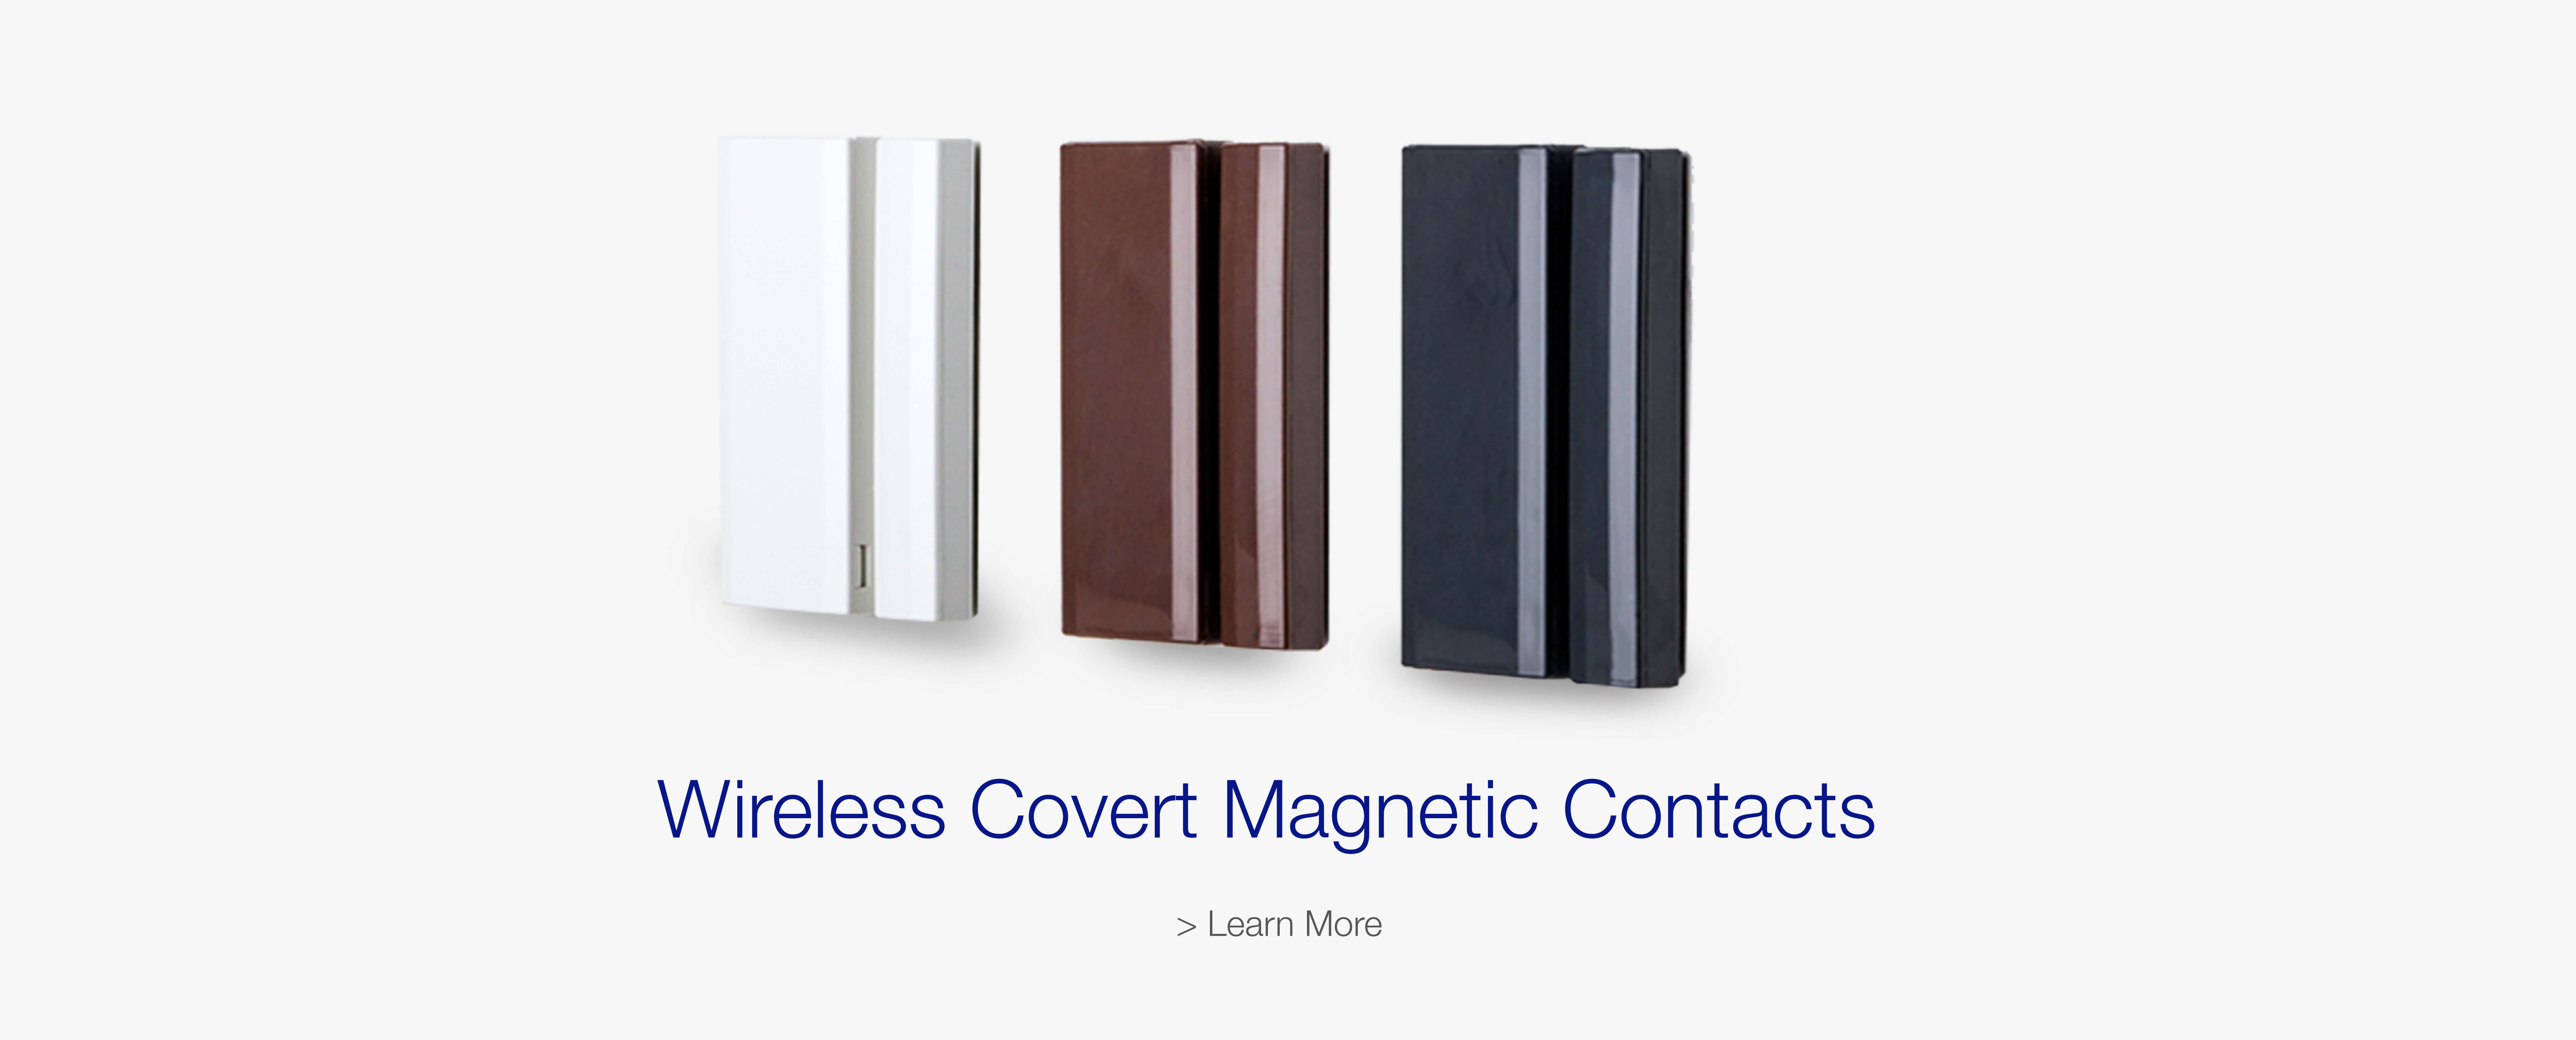 Wireless Covert Magnetic Contact